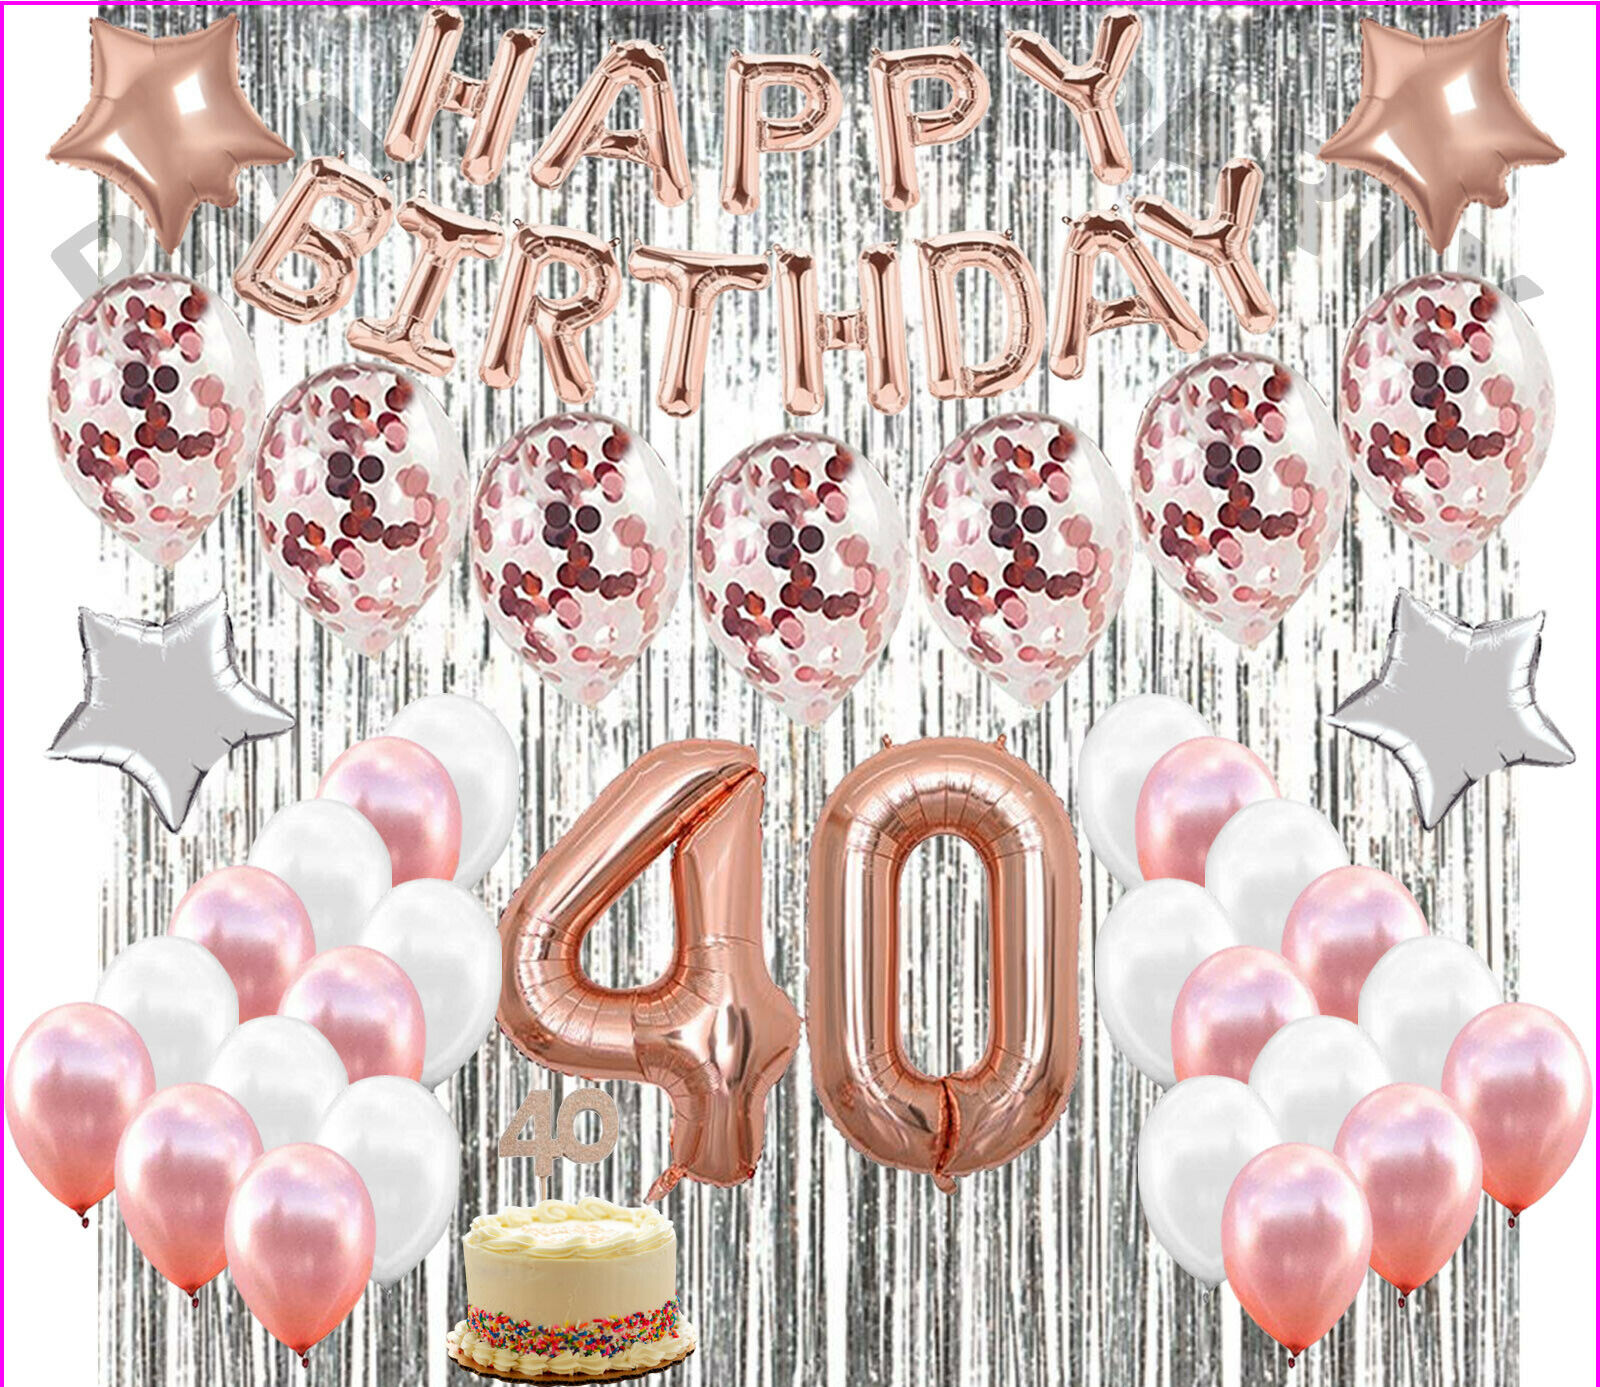 40th Birthday Sign Never Looked So Good Colormoon Large 40th Birthday Banner 9.8 x 1.5 feet 40th Birthday Party Supplies Decorations